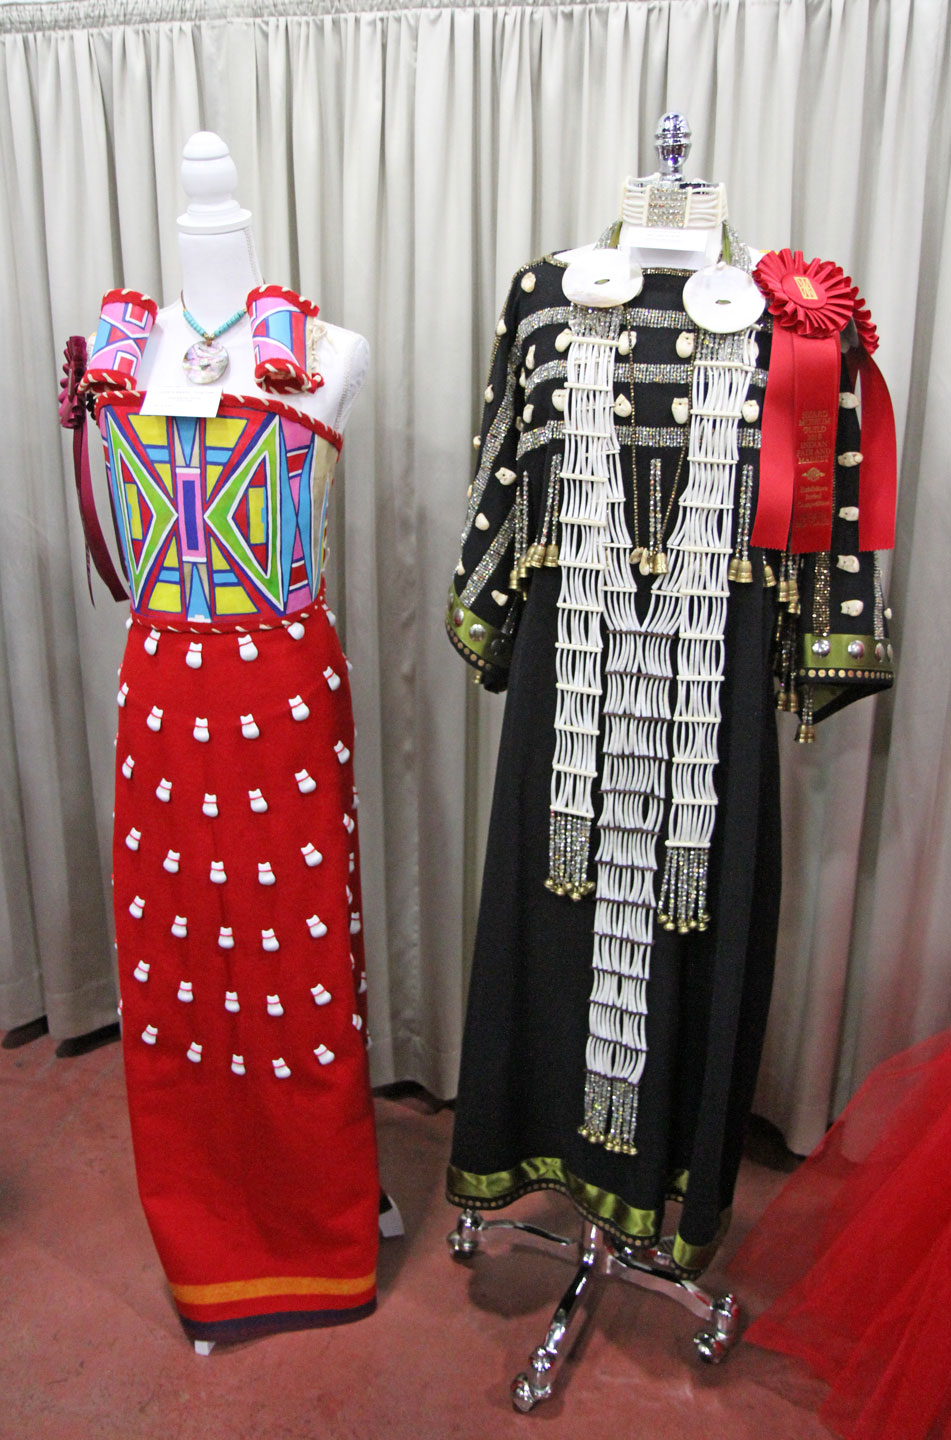 DRESSES by Della Big-Hair Stump (Crow Tribe) and Catherine Black Horse (Seminole, Oklahoma). Big-Hair Stump won the Judge's Award from Doug Hyde, in the Cutting Edge category, while Black Horse received Second Place in Personal Attire.